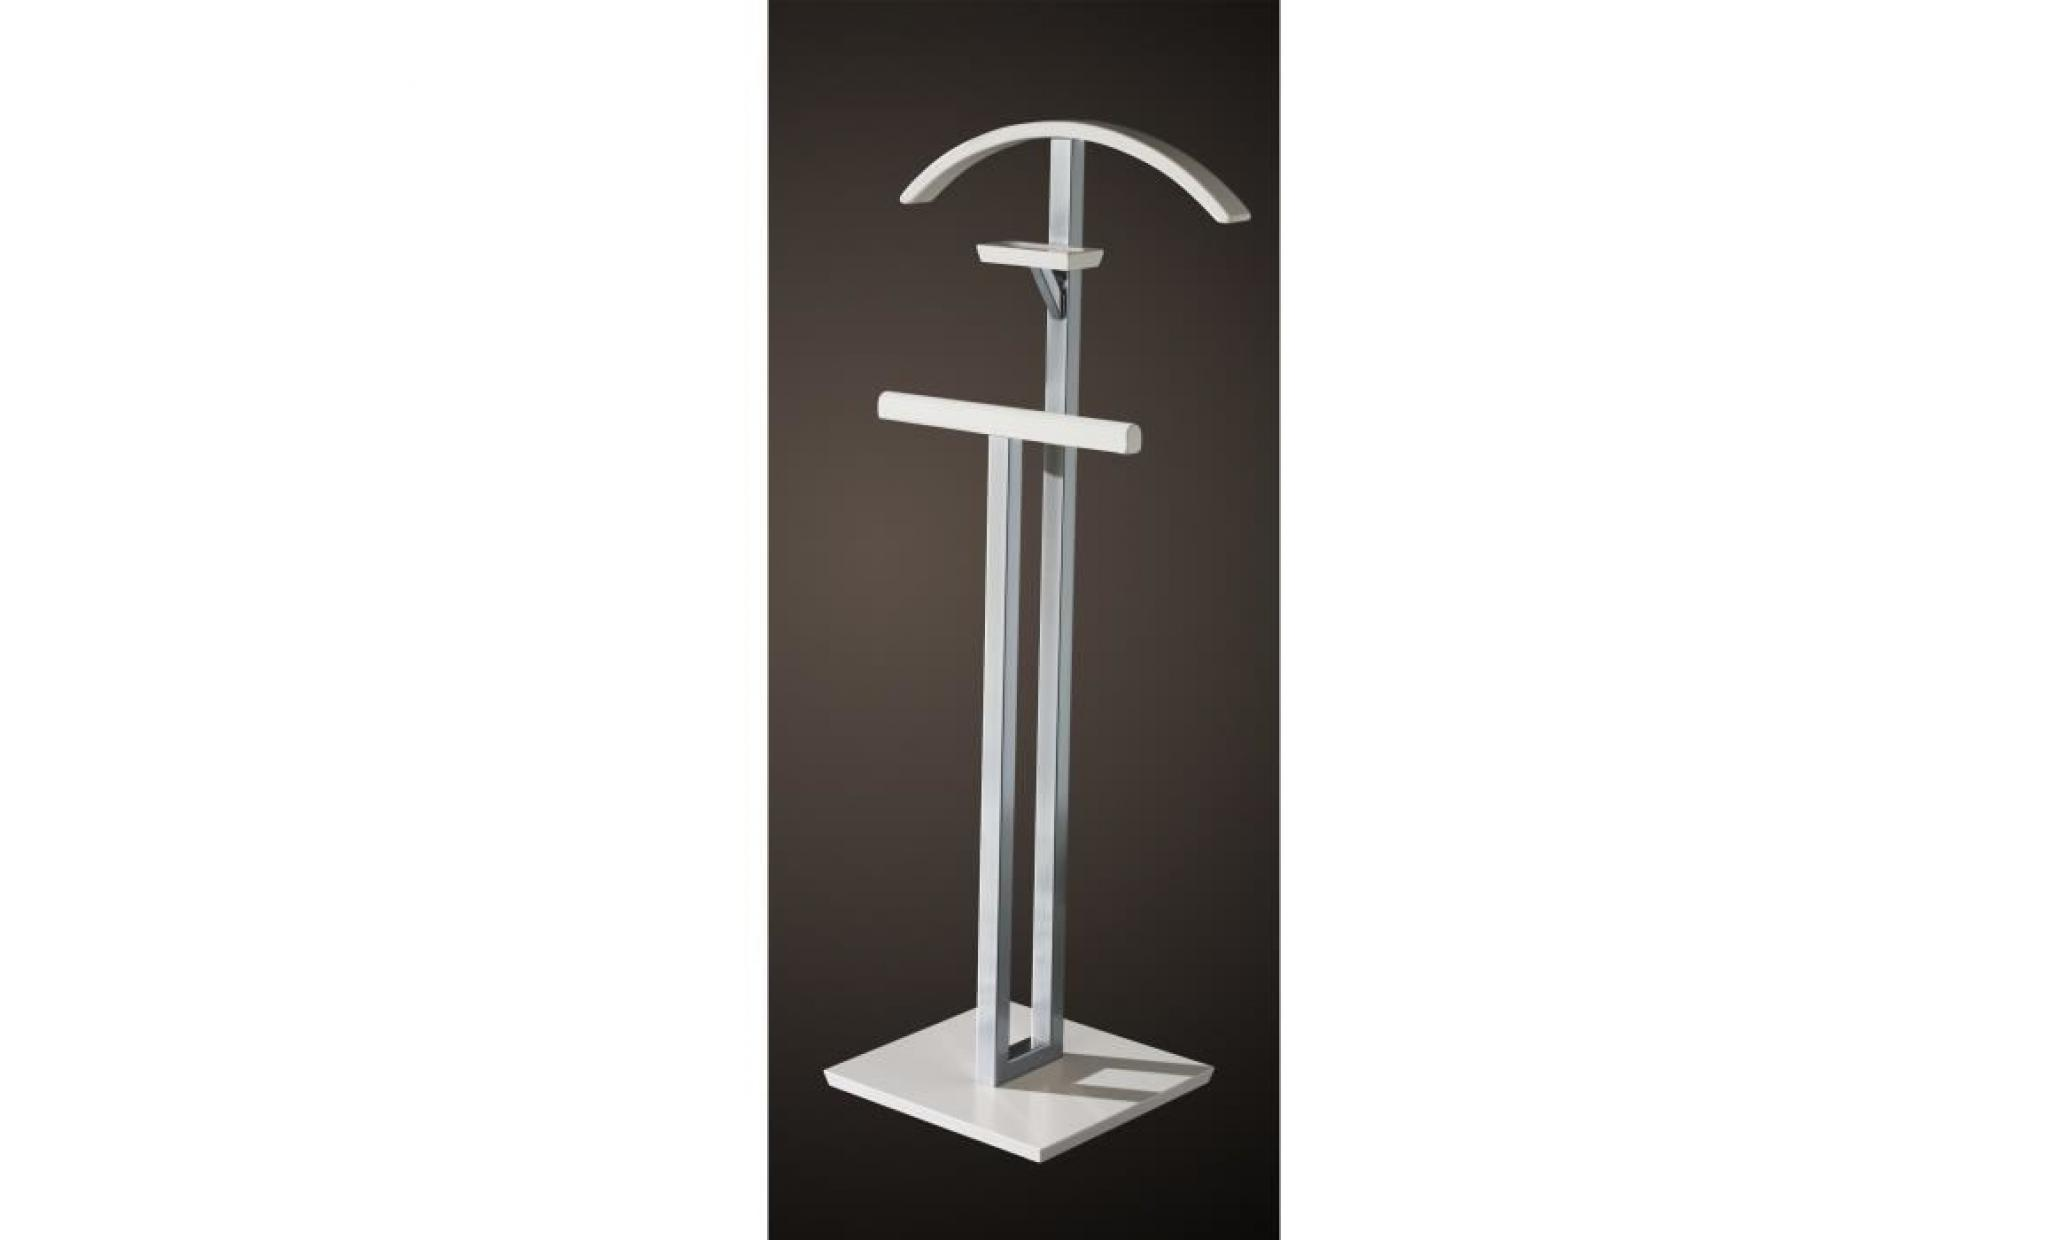 Valet Design Vetement Mori Valet Stand With Valet Design